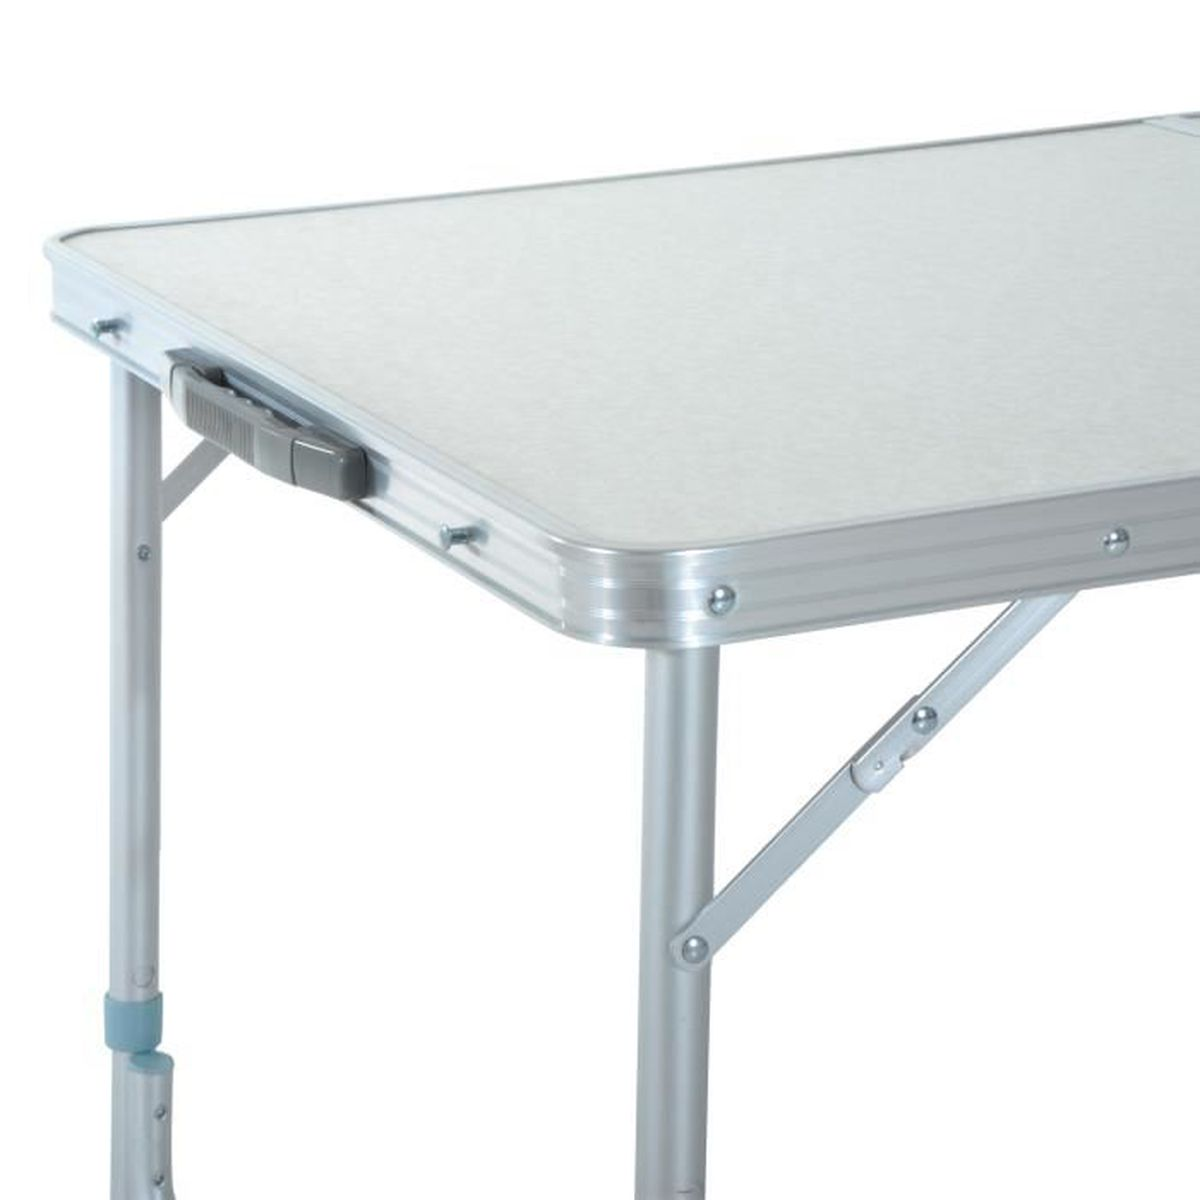 Table de camping pliante portable 120l x 60l x 70 h cm et for Soldes table de jardin